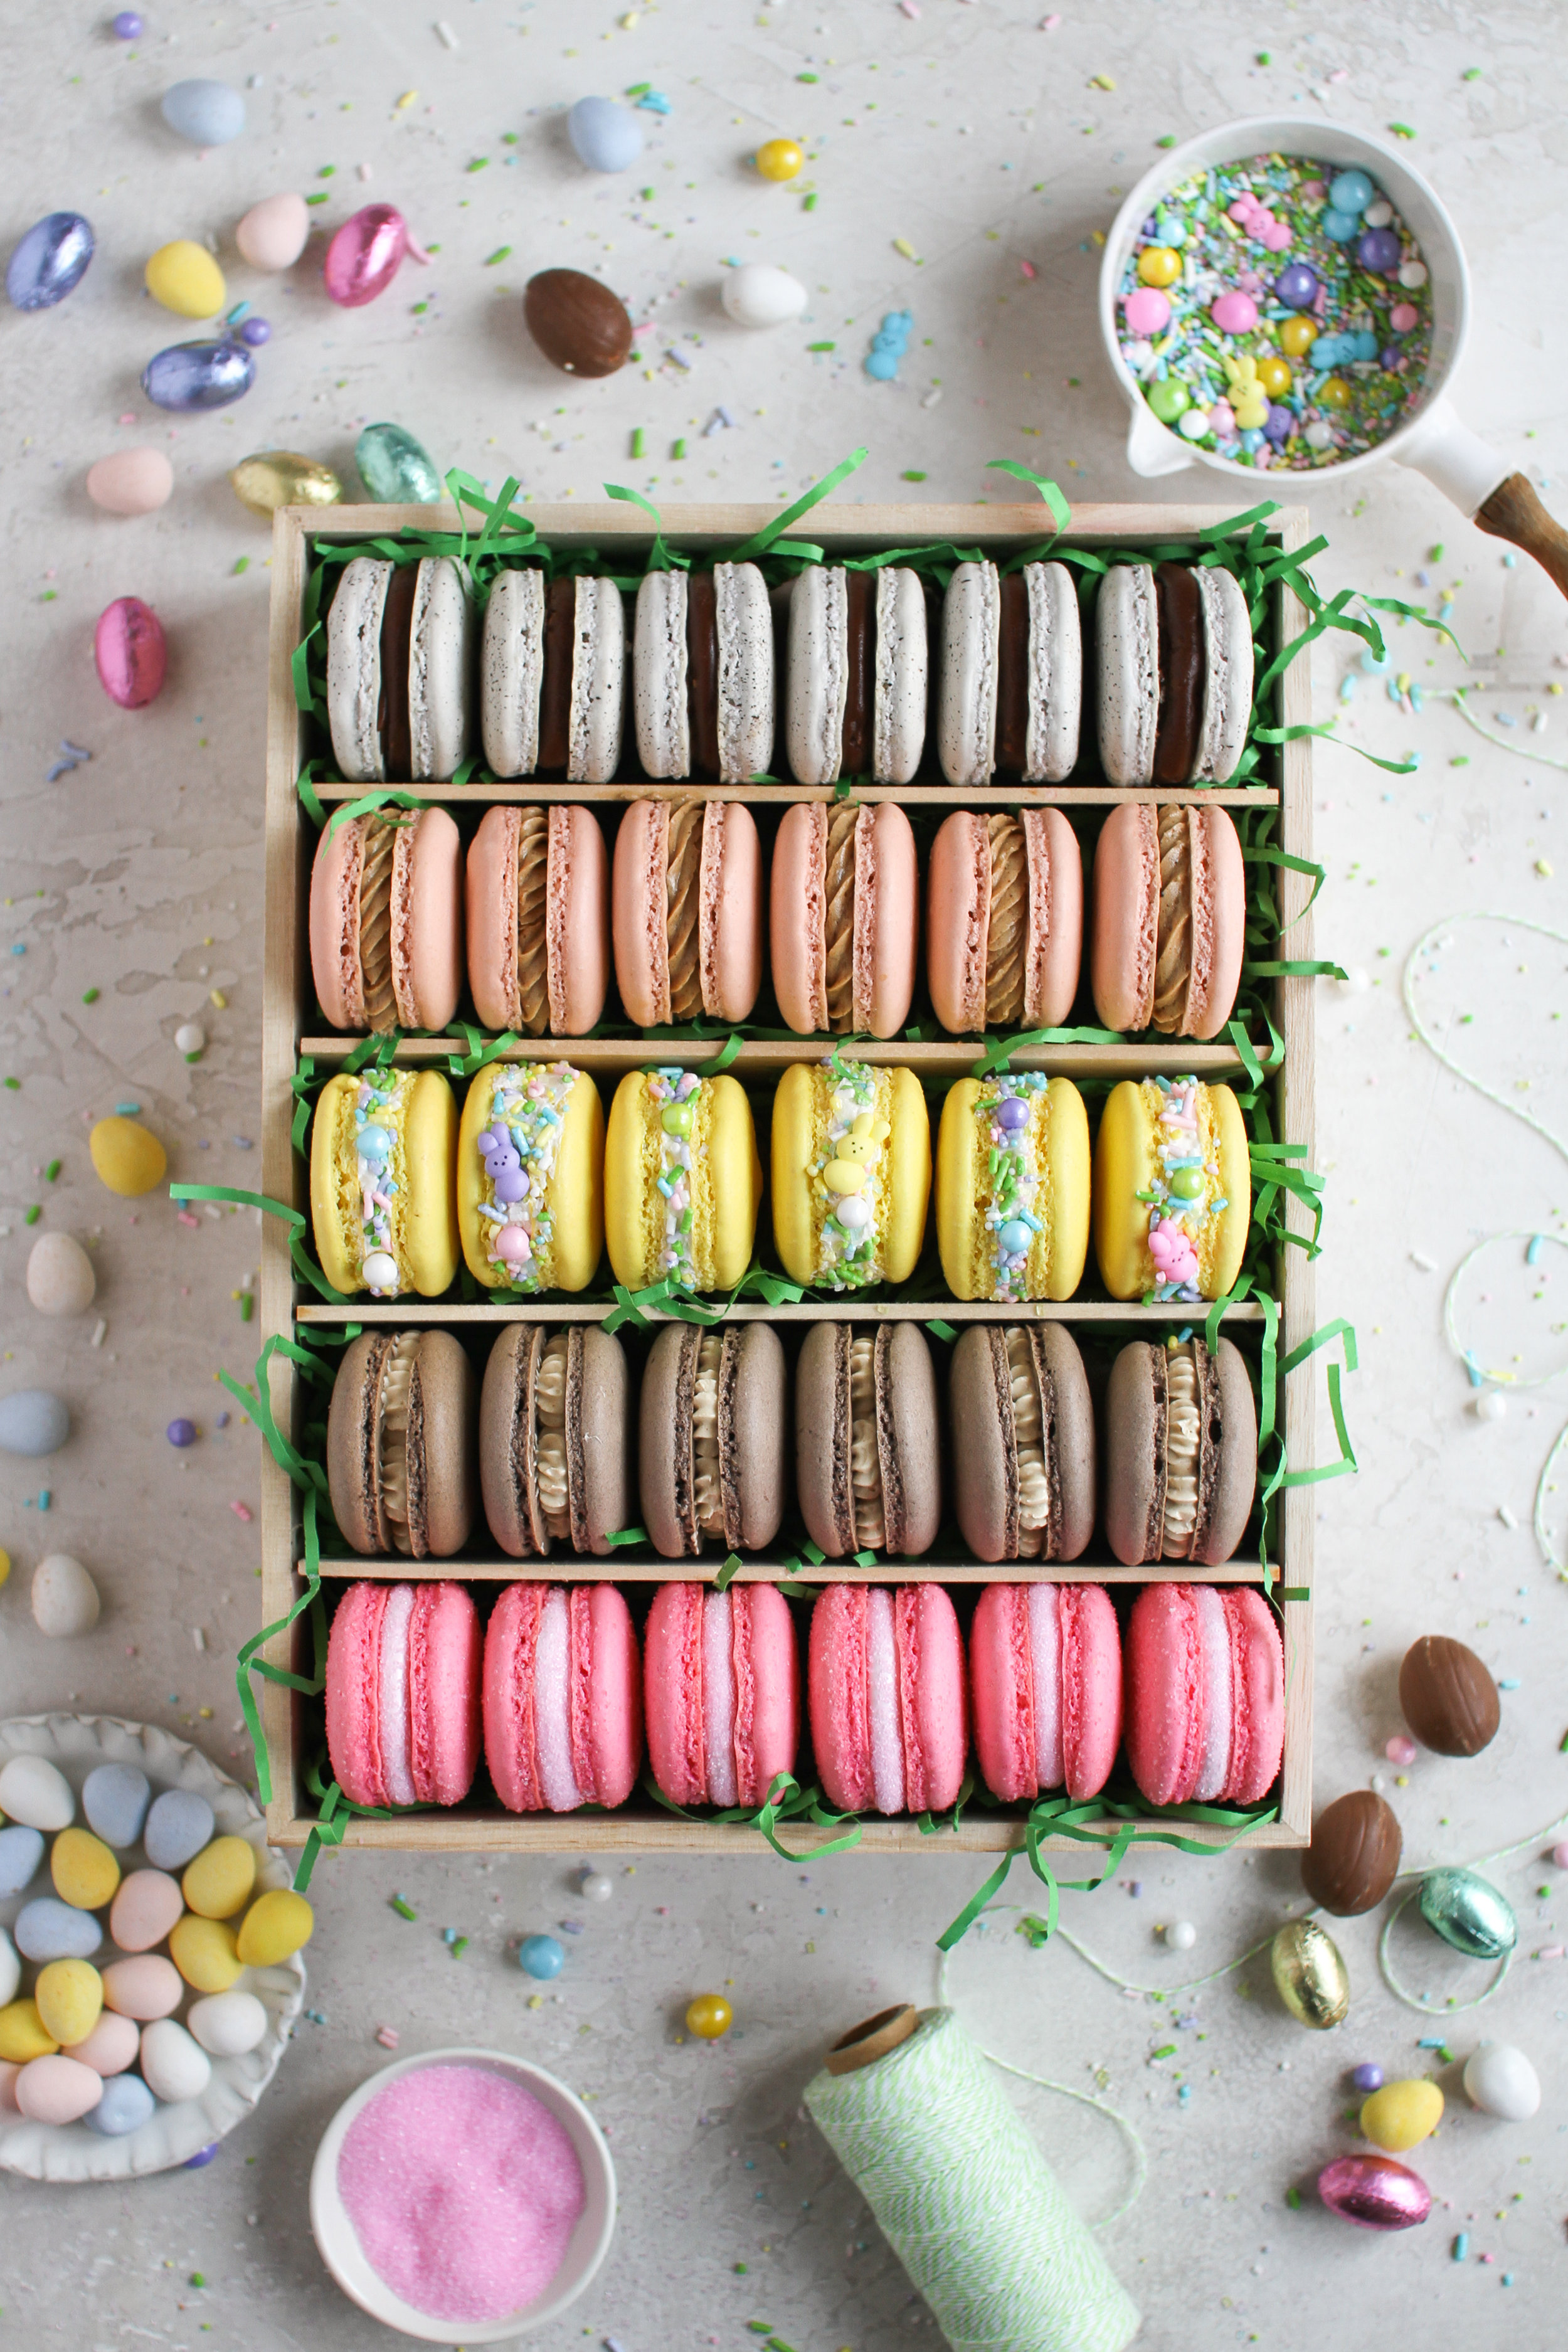 The Ultimate Easter Macarons - classic vanilla shell and chocolate shells filled with peep marshmallow, reeses peanut butter swiss meringue buttercream, cadbury creme egg ganache, hot cross buns spiced german buttercream and coconut vanilla bean swiss meringue buttercream by Fox and Crane - foxandcrane.com